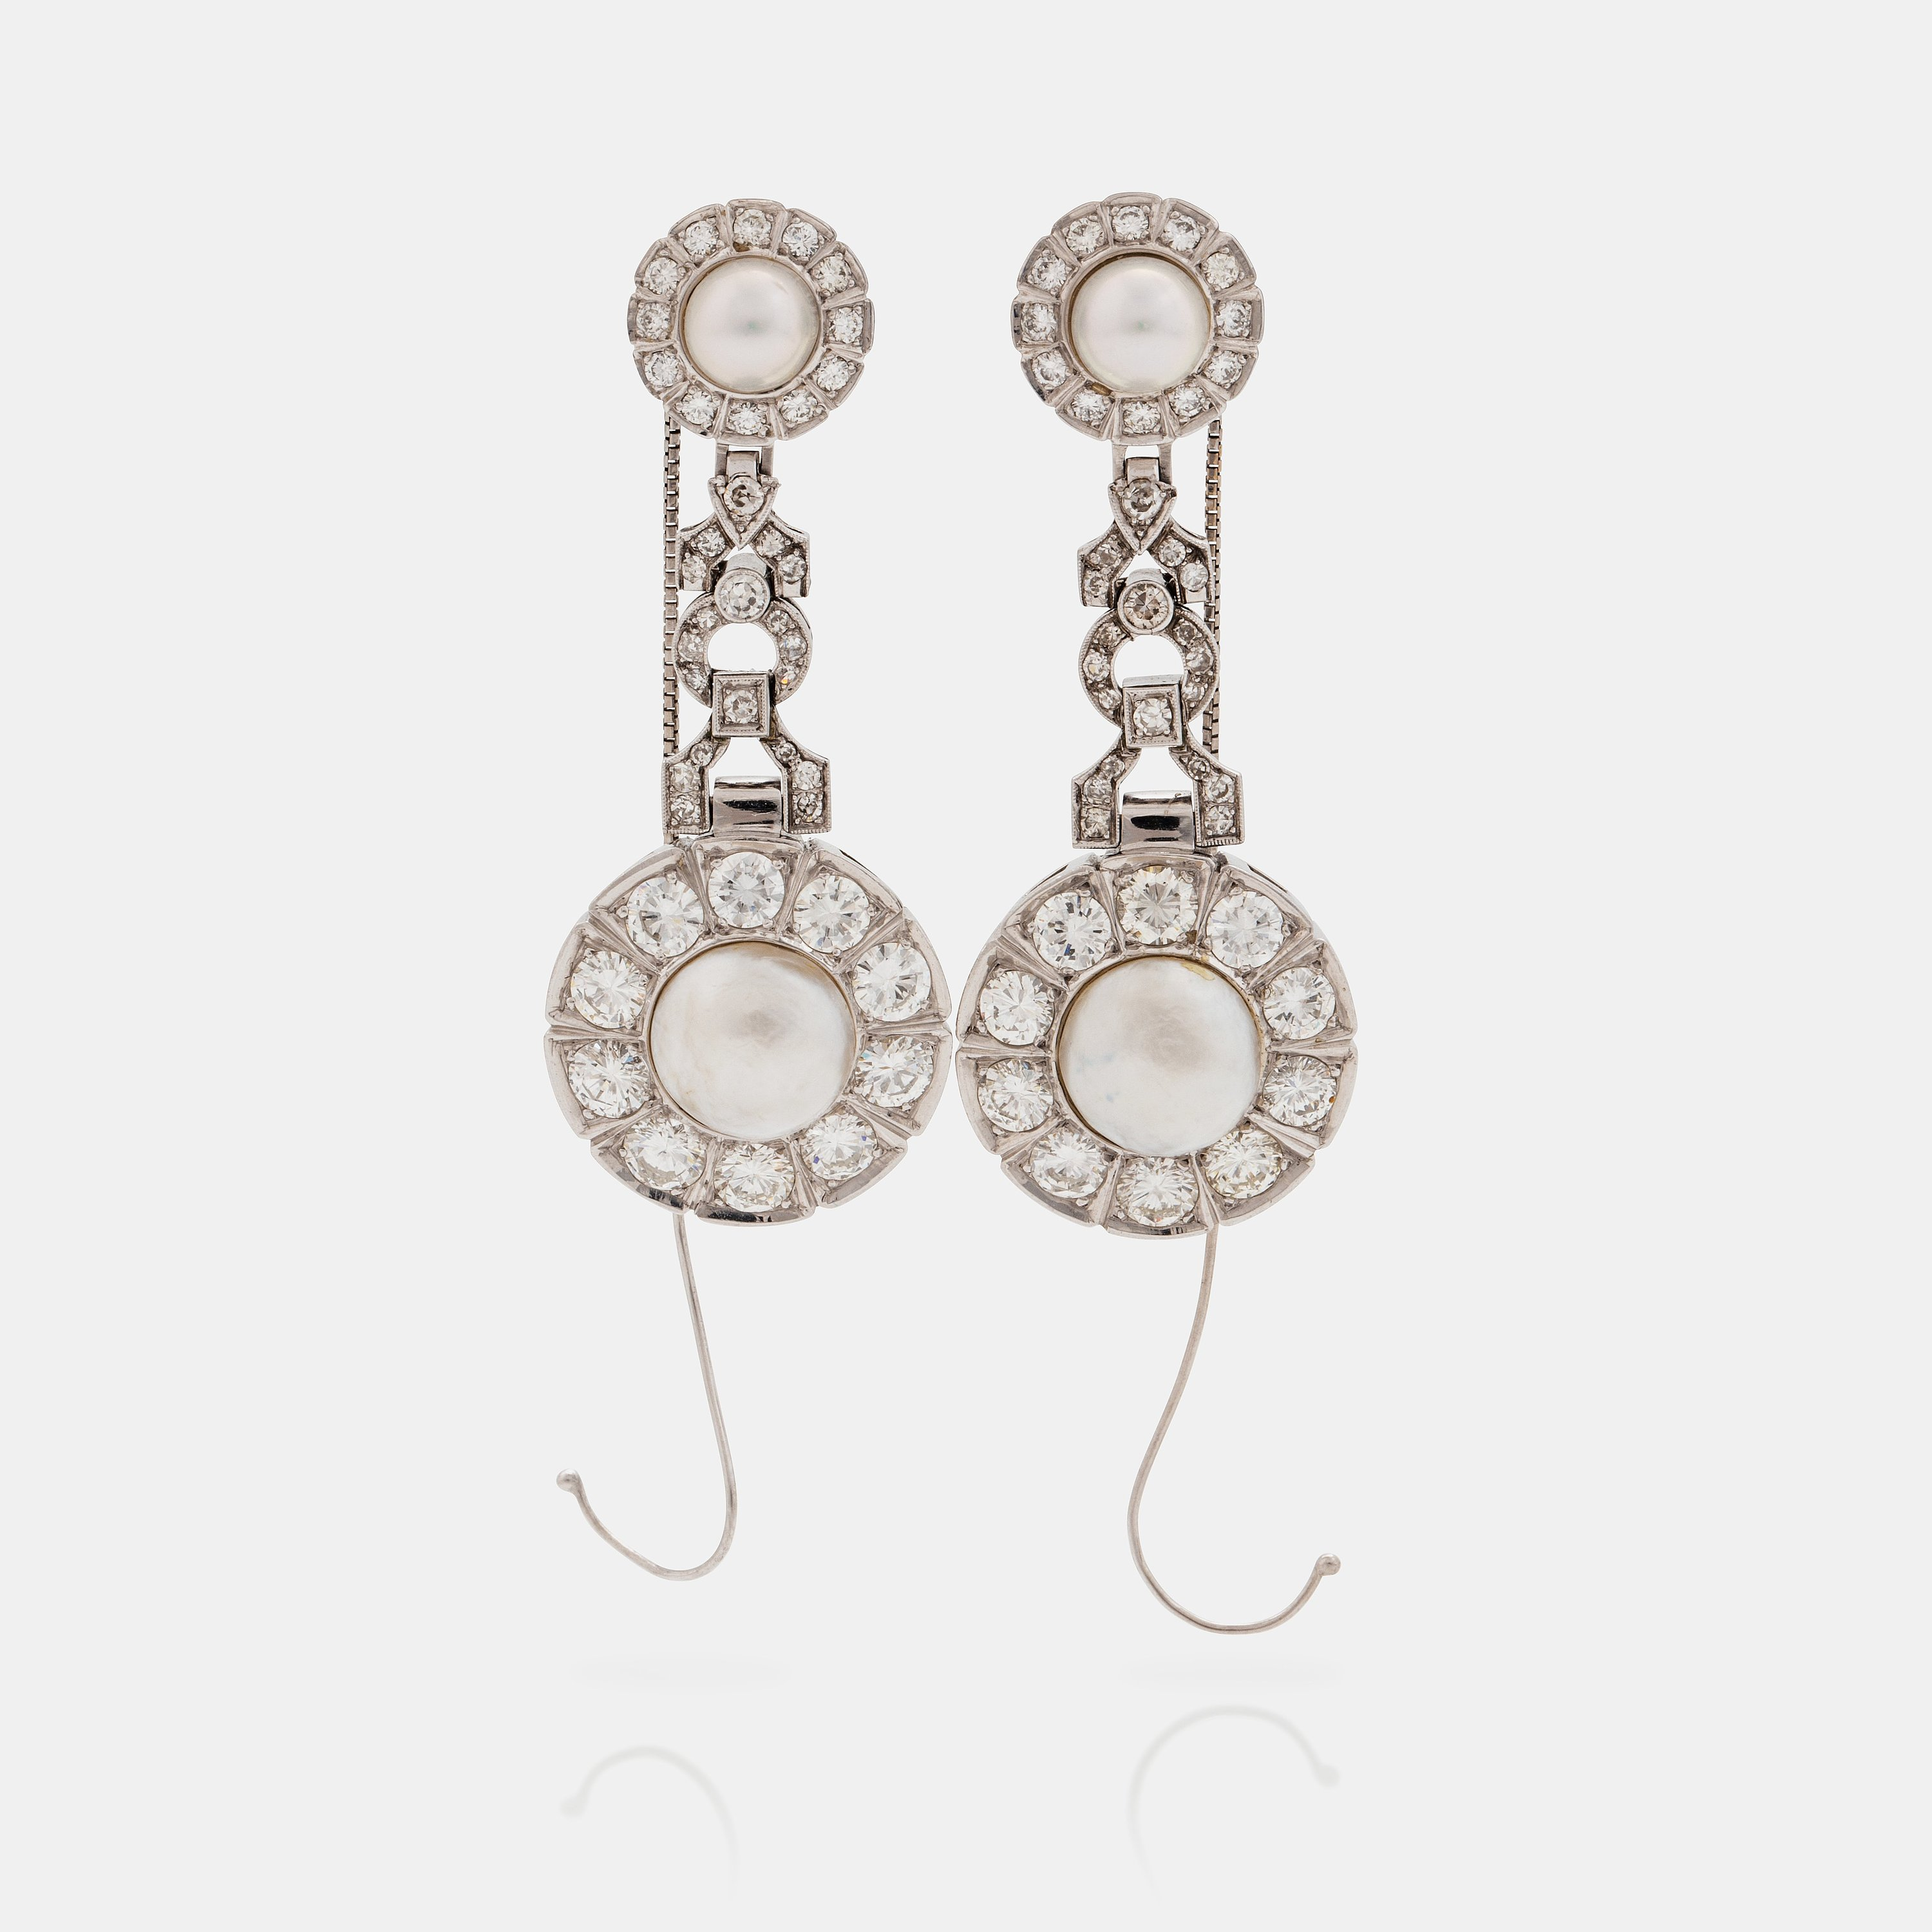 a47e7b33ec738 A pair of probably natural saltwater pearl, cultured pearl and ...